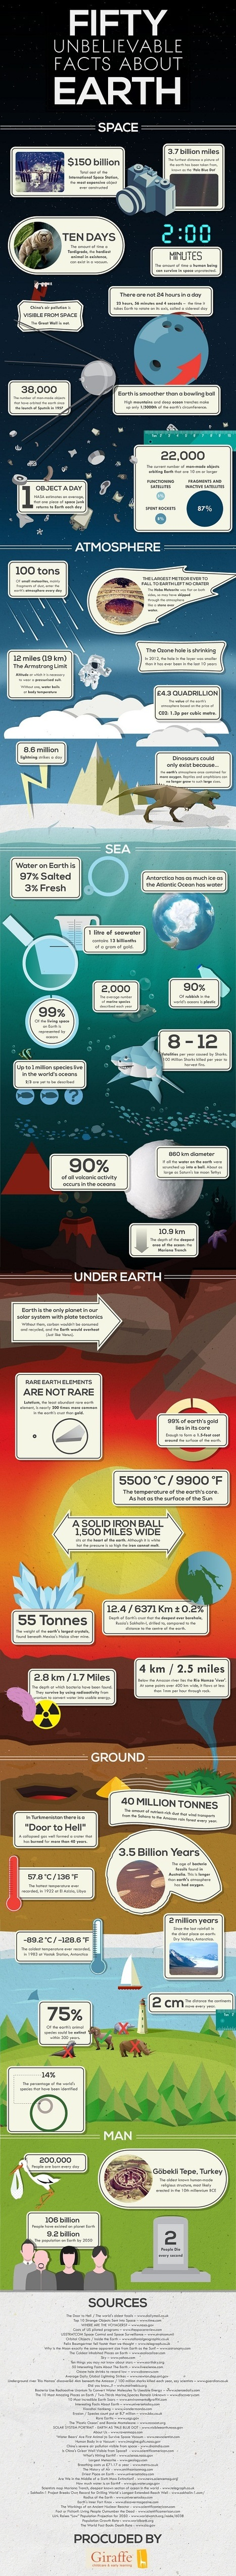 50 Awesome Facts About Earth To Share With Your Class [Infographic] | marcokubis | Scoop.it